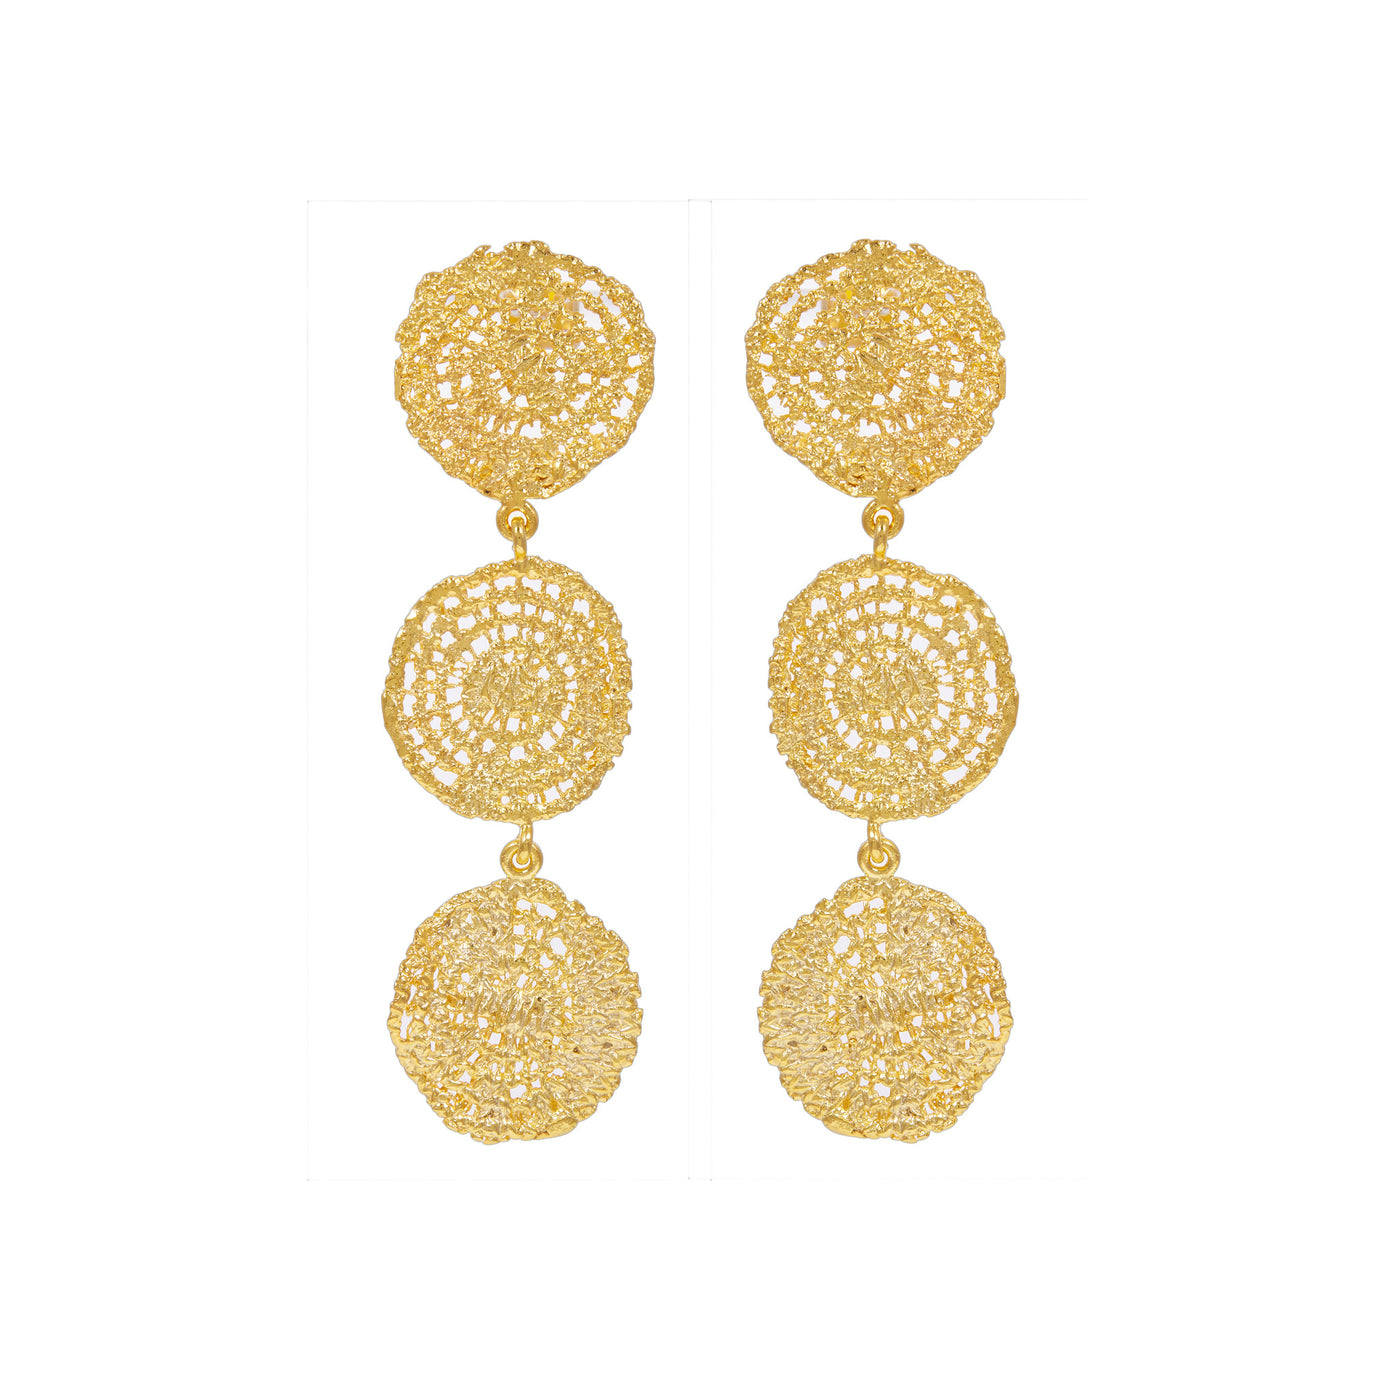 SONAR GOLD-PLATED EARRINGS